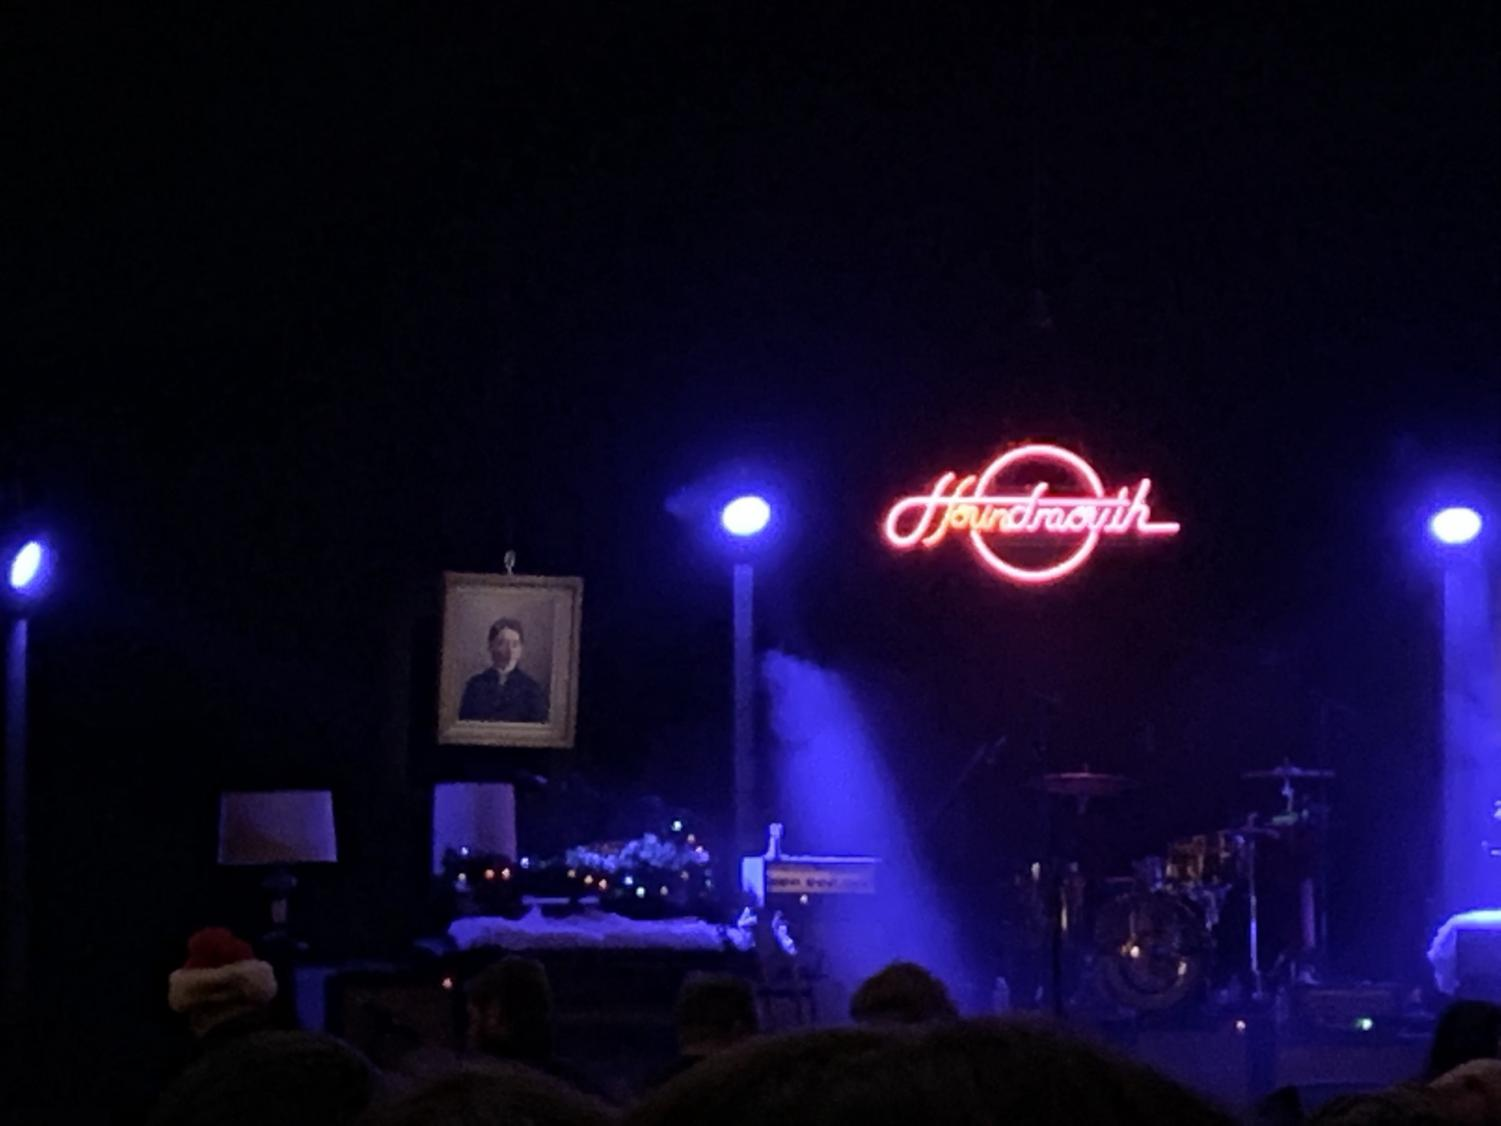 The lights at Houndmouth's Dec. 22 show at the Louisville Palace